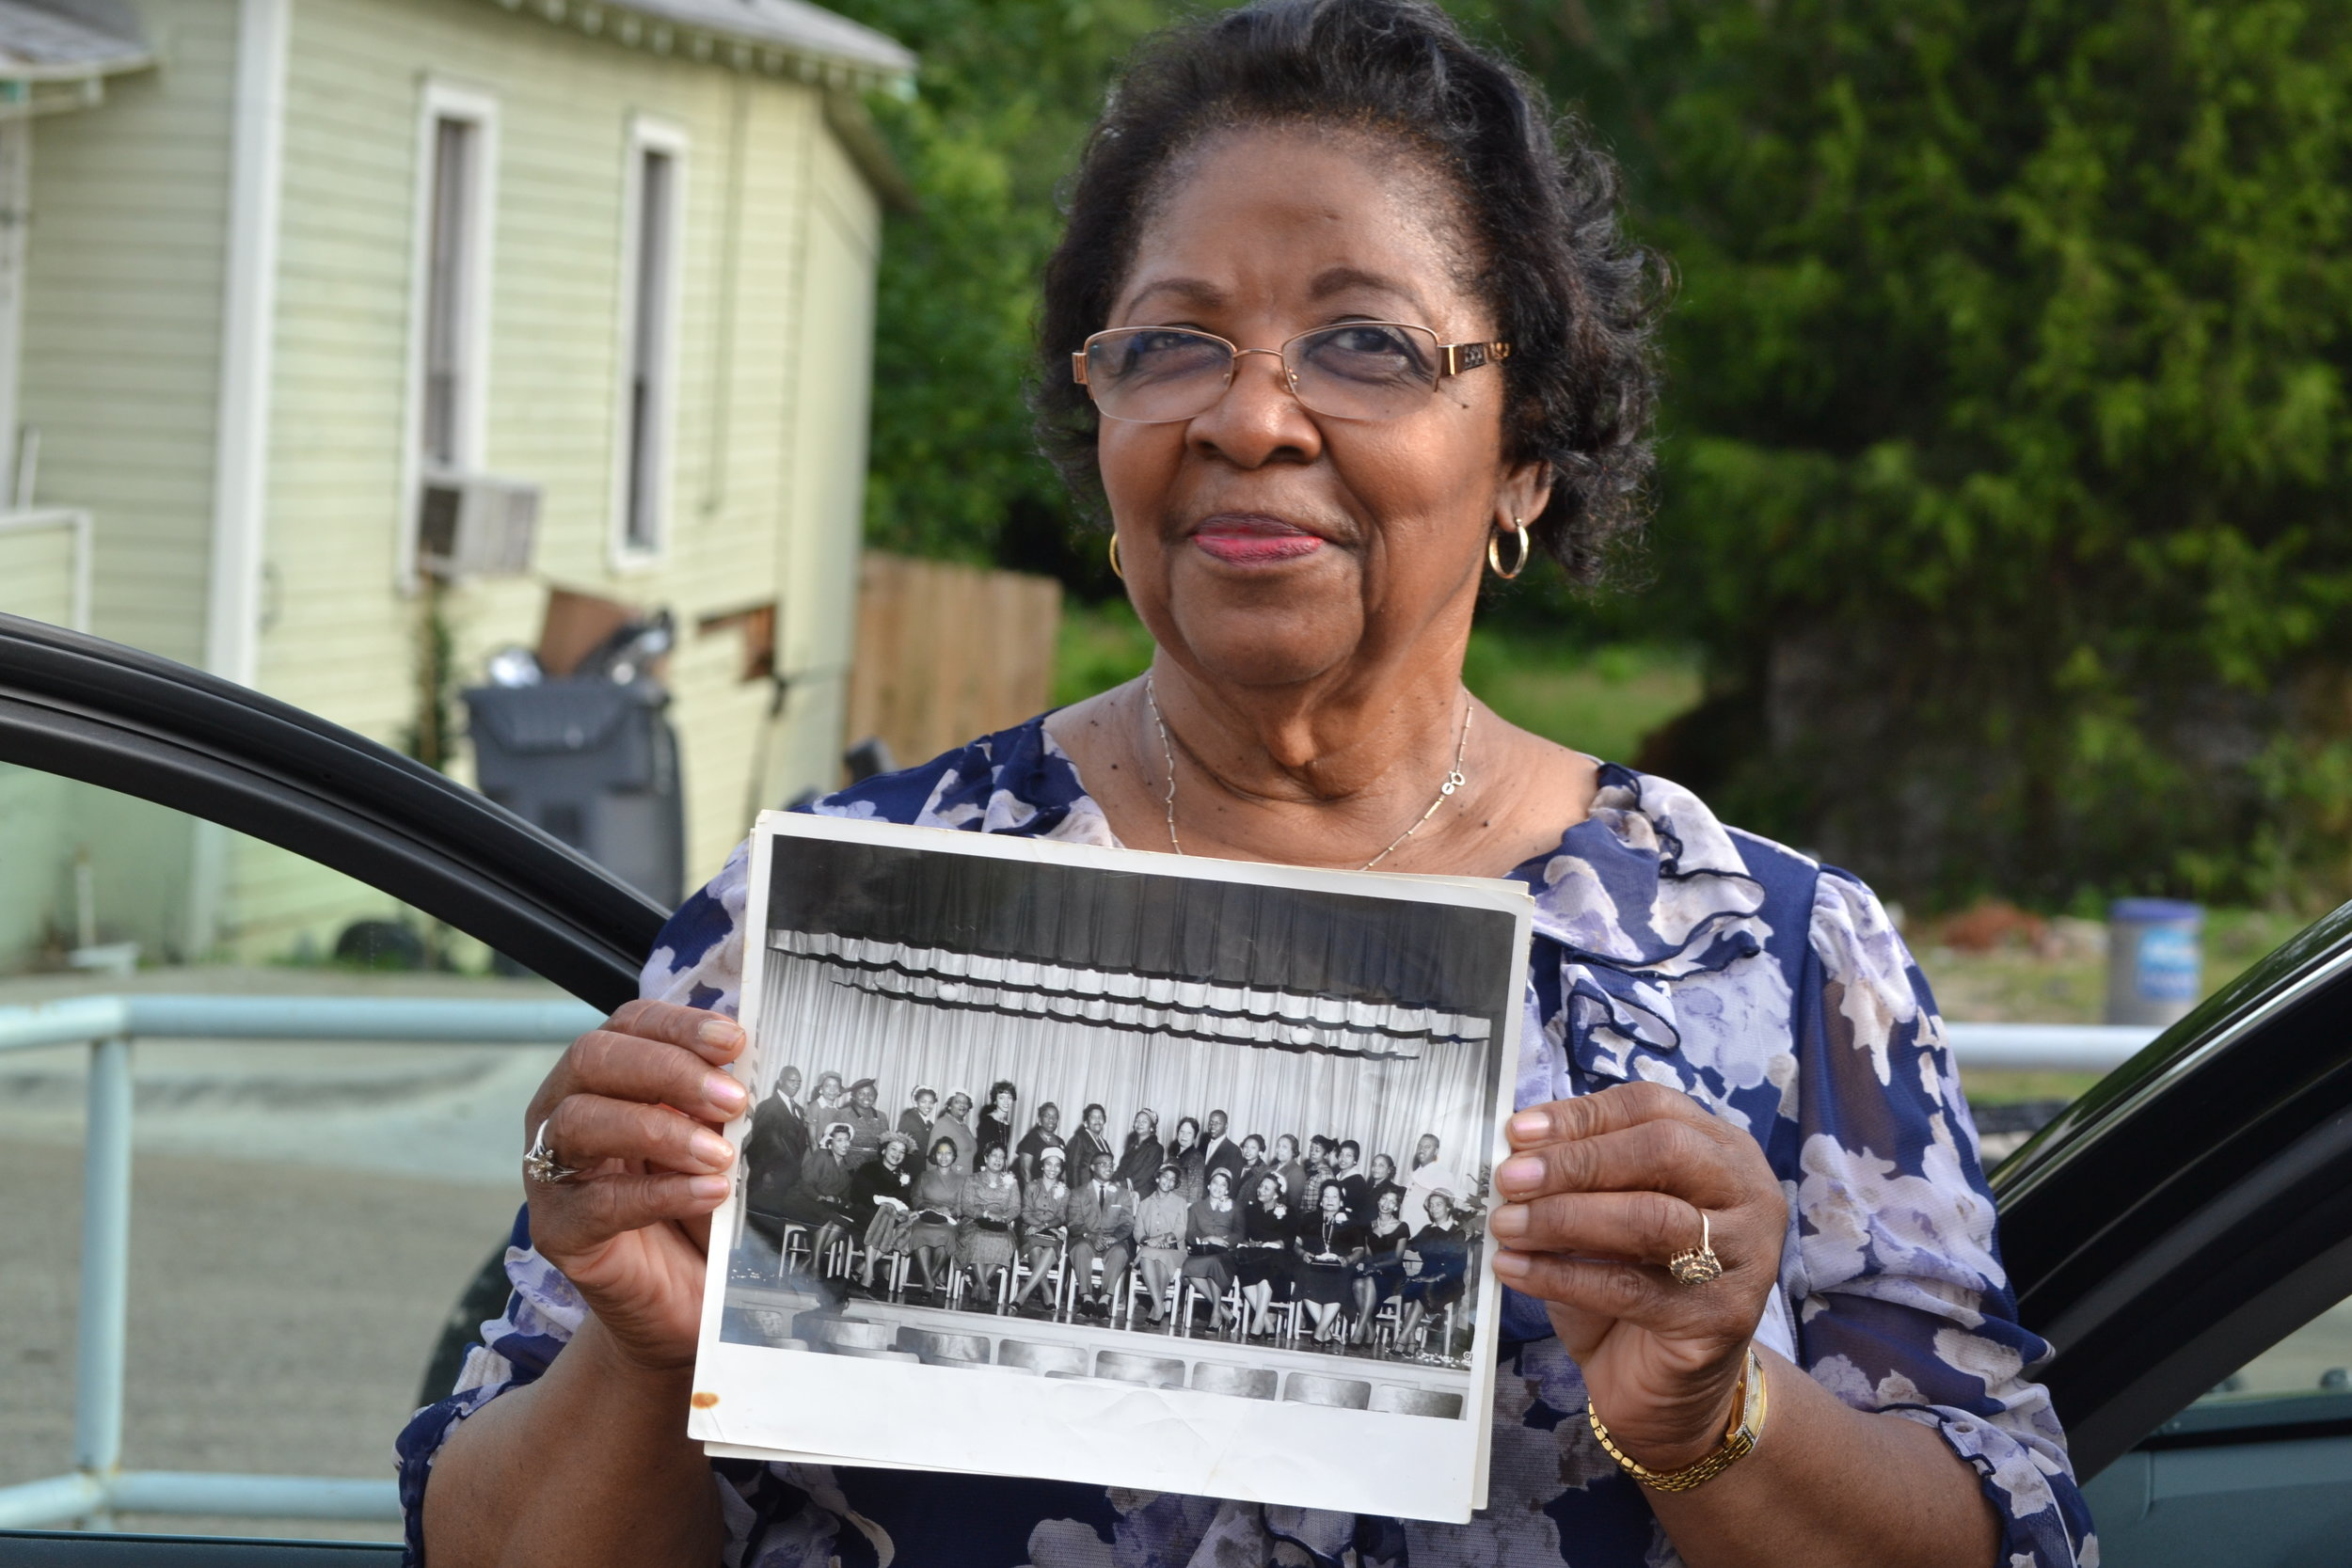 A resident displays a historic photograph.